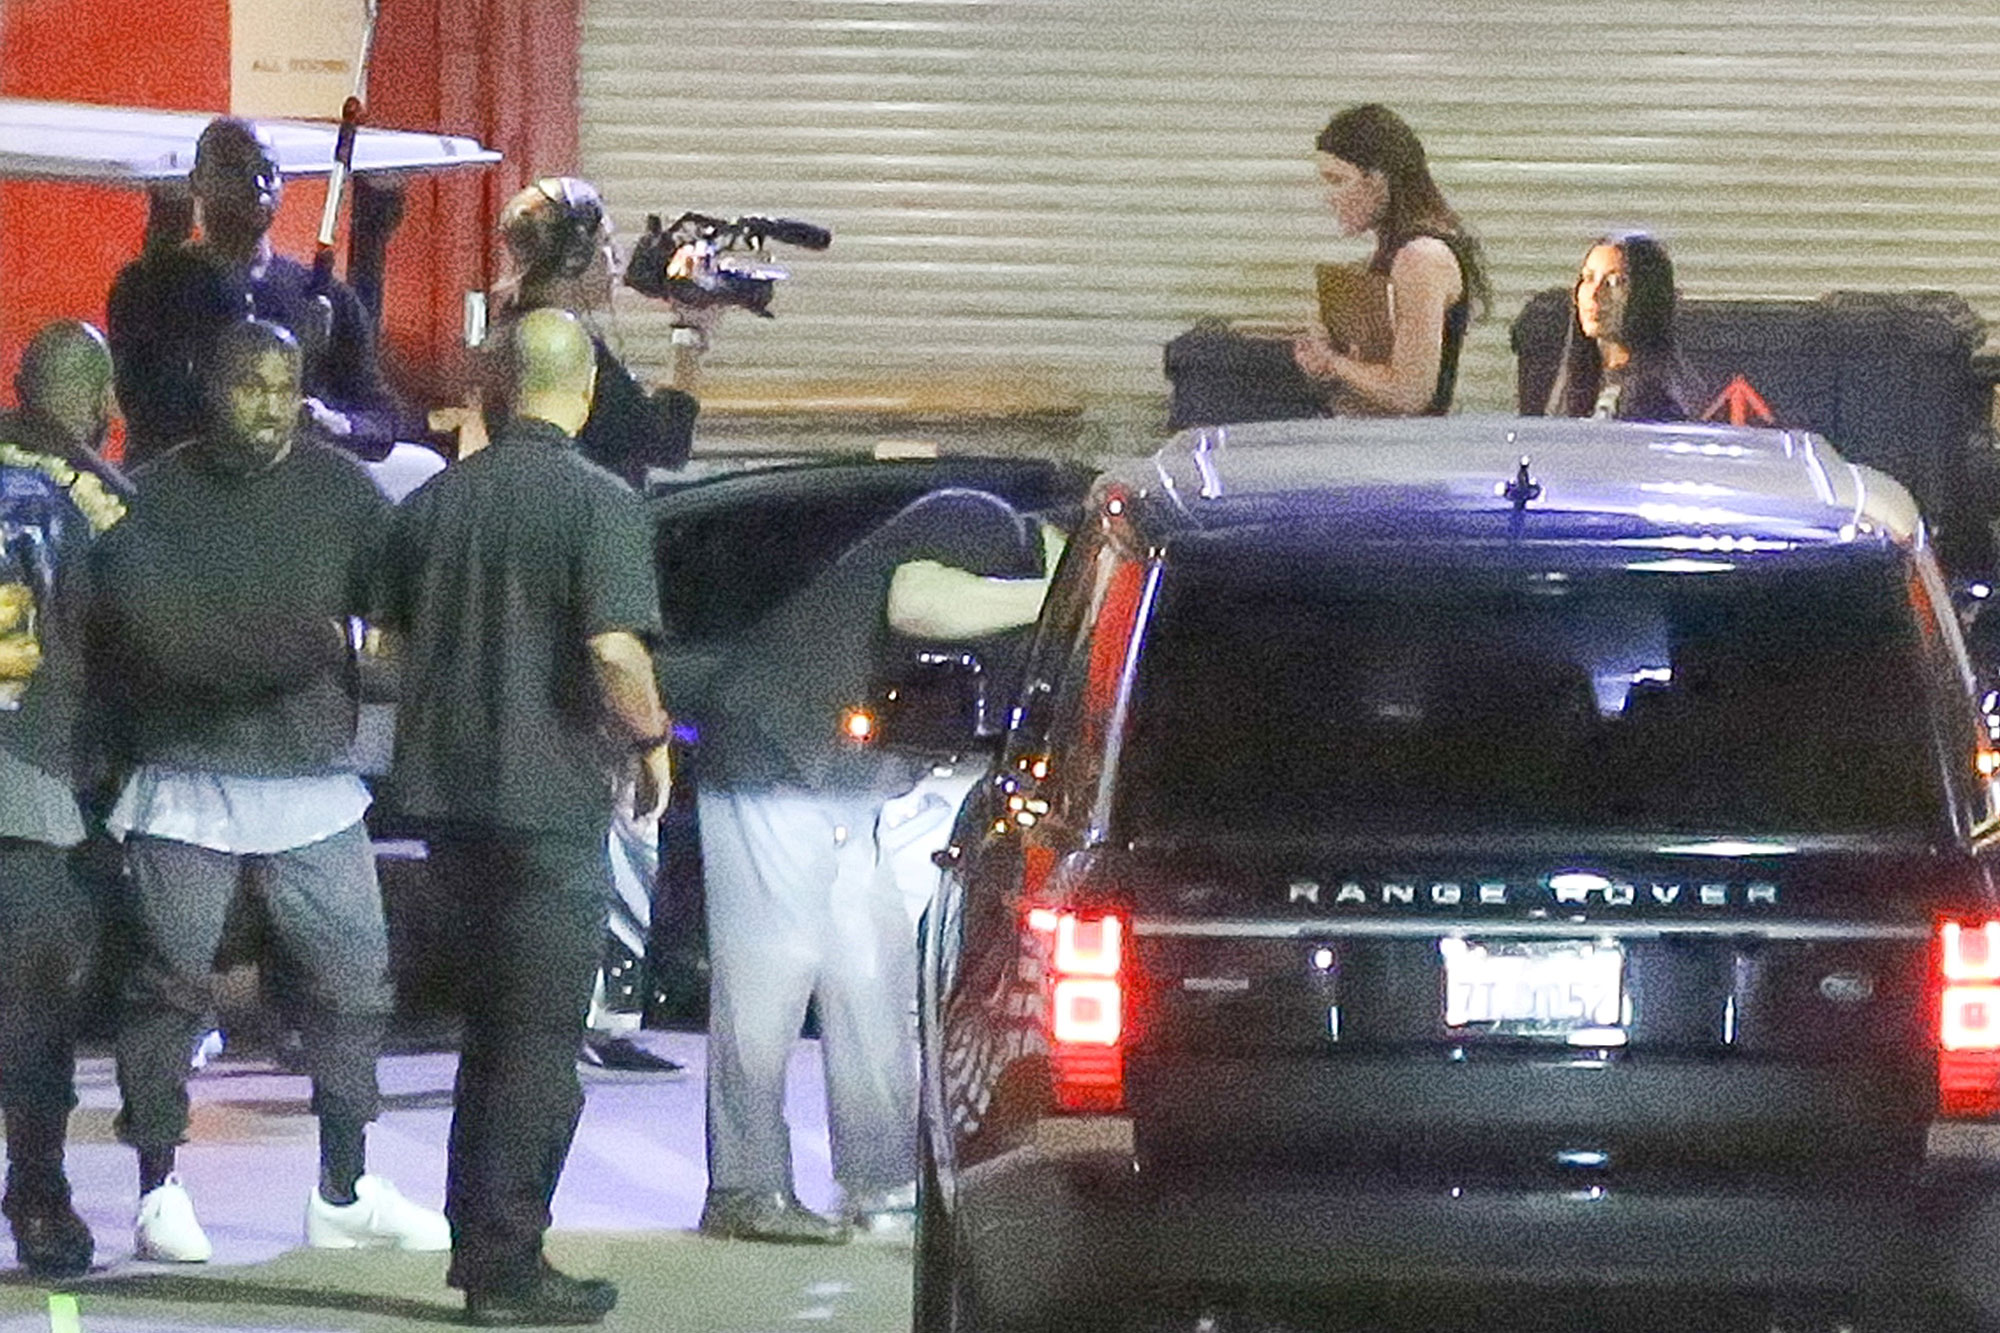 *EXCLUSIVE* Inglewood, CA - *EXCLUSIVE* Inglewood, CA - Kim Kardashian finally emerges at a public event attending the Kanye West's Saint Pablo Tour stop at The Forum in Inglewood. The KUWTK cameras were present to get her return to the public world. AKM-GSI 25 OCTOBER 2016 To License These Photos, Please Contact : Maria Buda (917) 242-1505 mbuda@akmgsi.com or Mark Satter (317) 691-9592 msatter@akmgsi.com sales@akmgsi.com